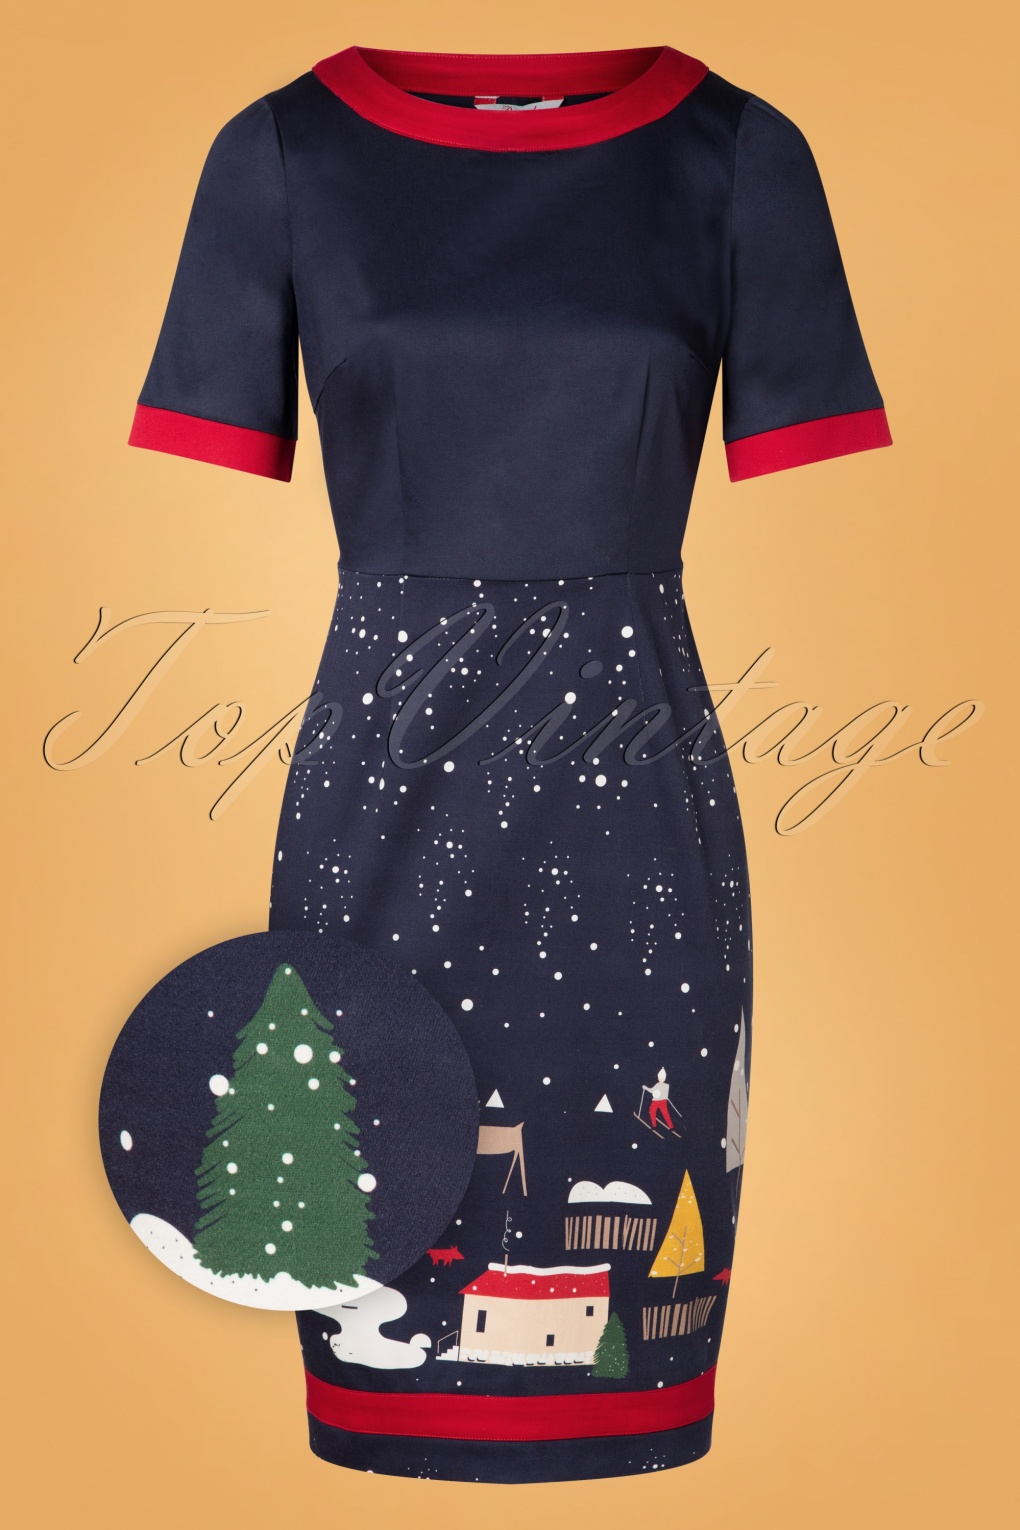 Wiggle Dresses | Pencil Dresses 40s, 50s, 60s 50s Christmas Town Pencil Dress in Navy £41.63 AT vintagedancer.com